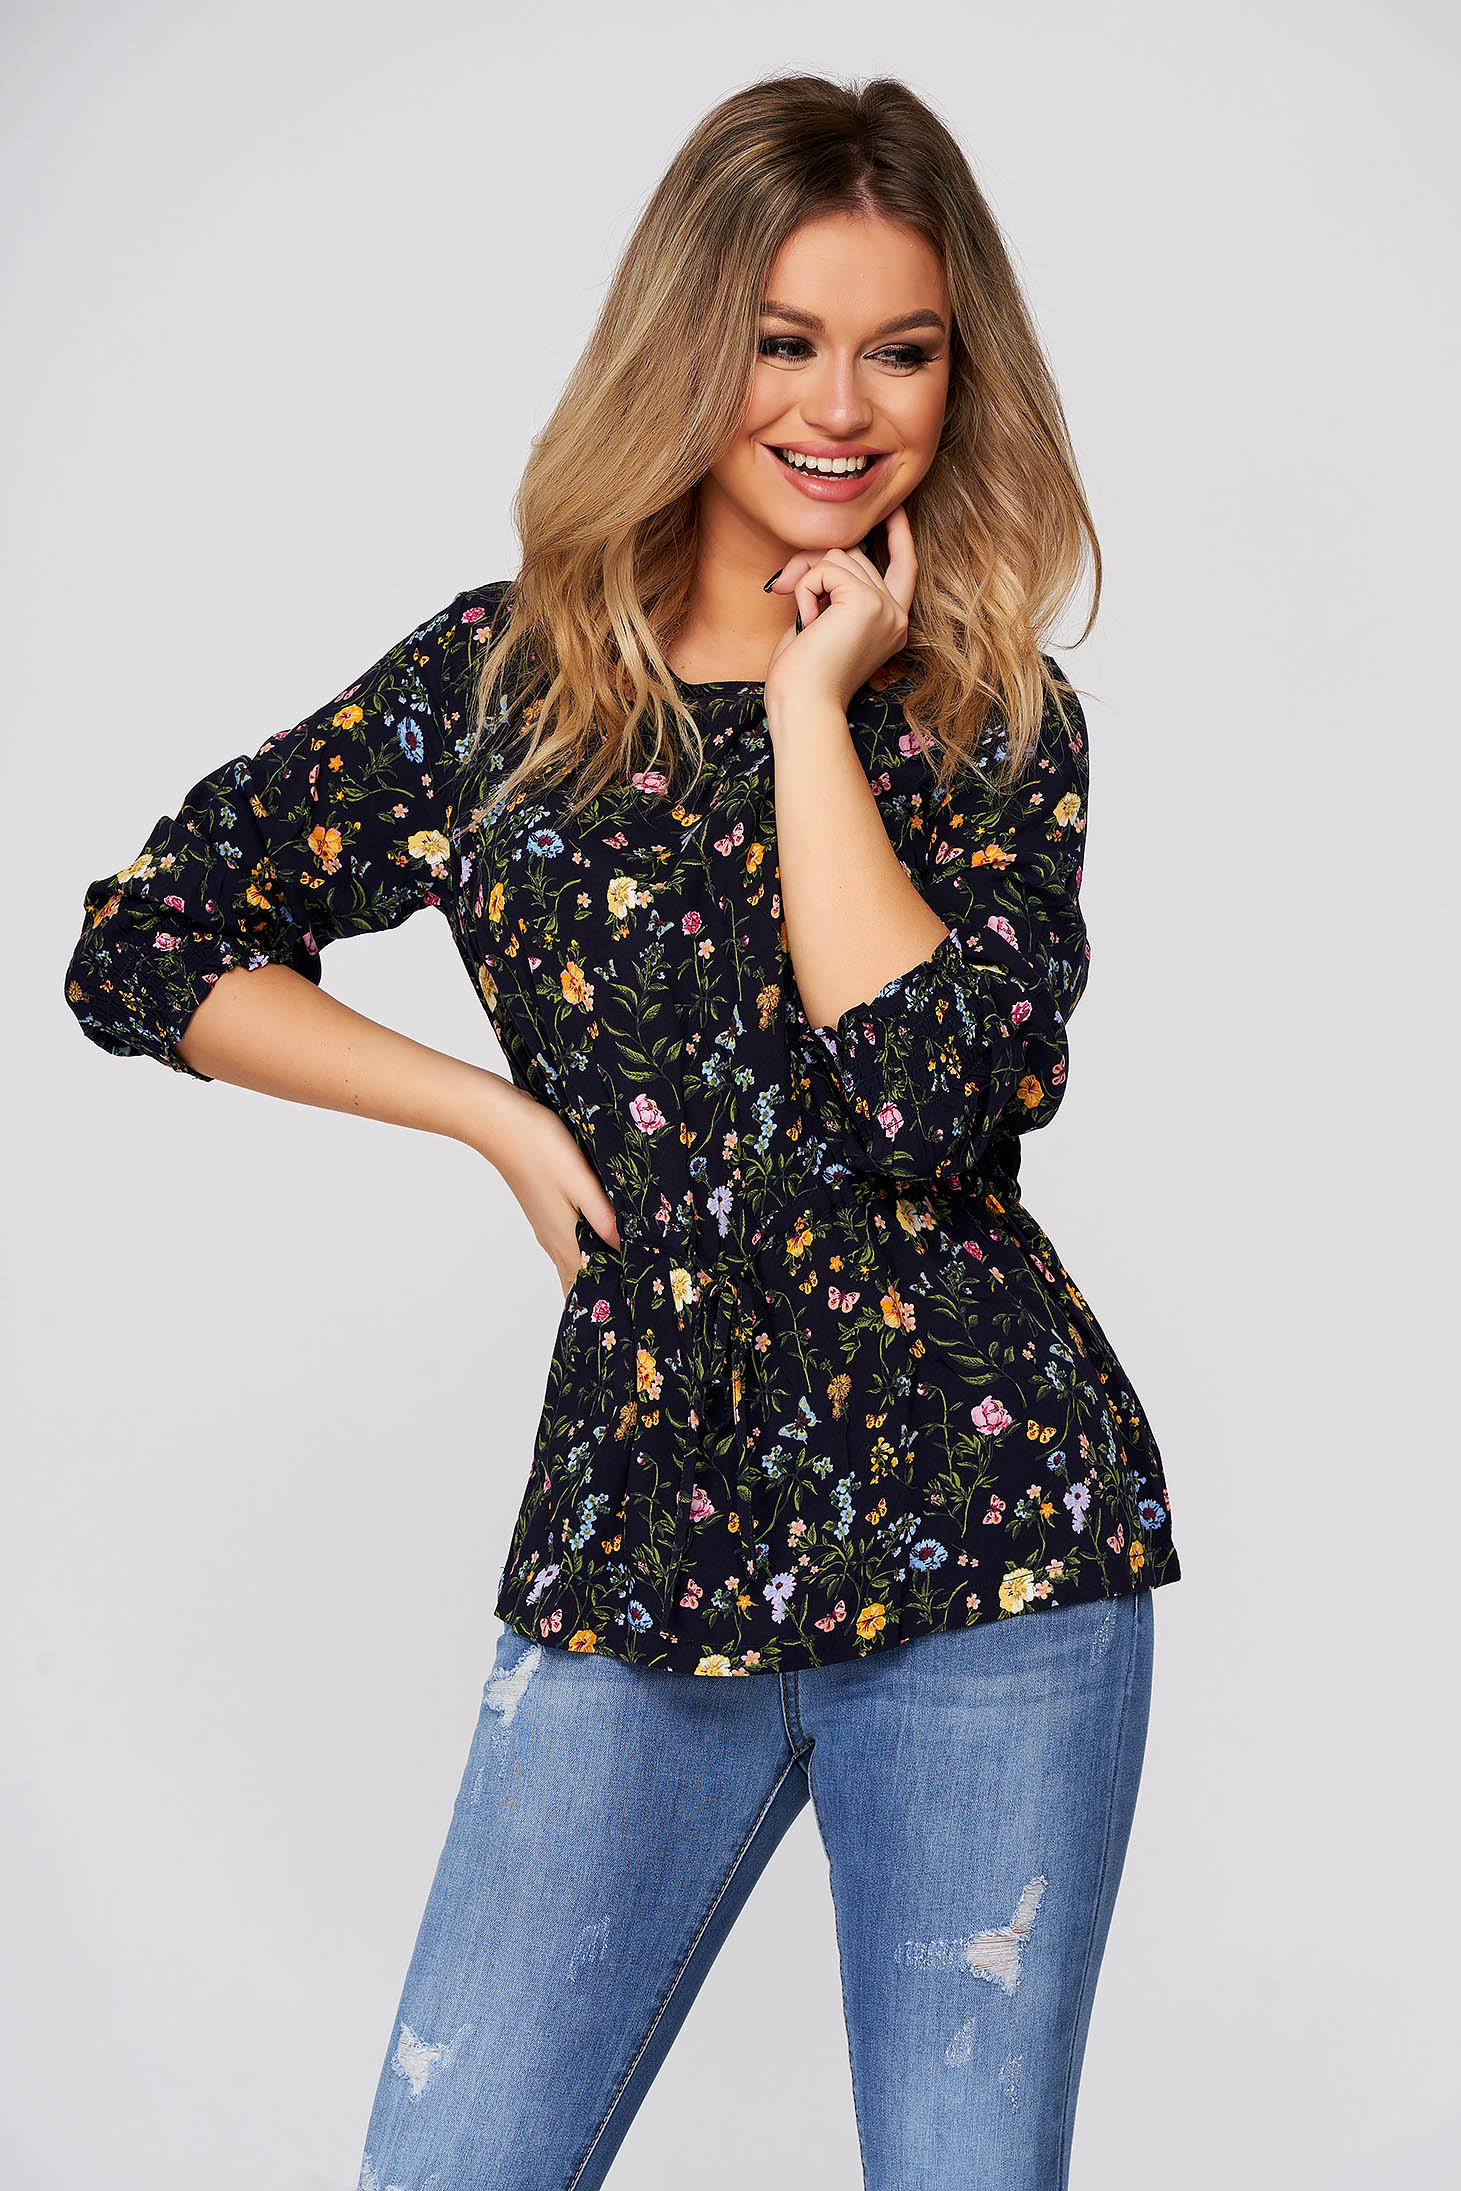 Darkblue women`s blouse casual flared airy fabric with floral prints